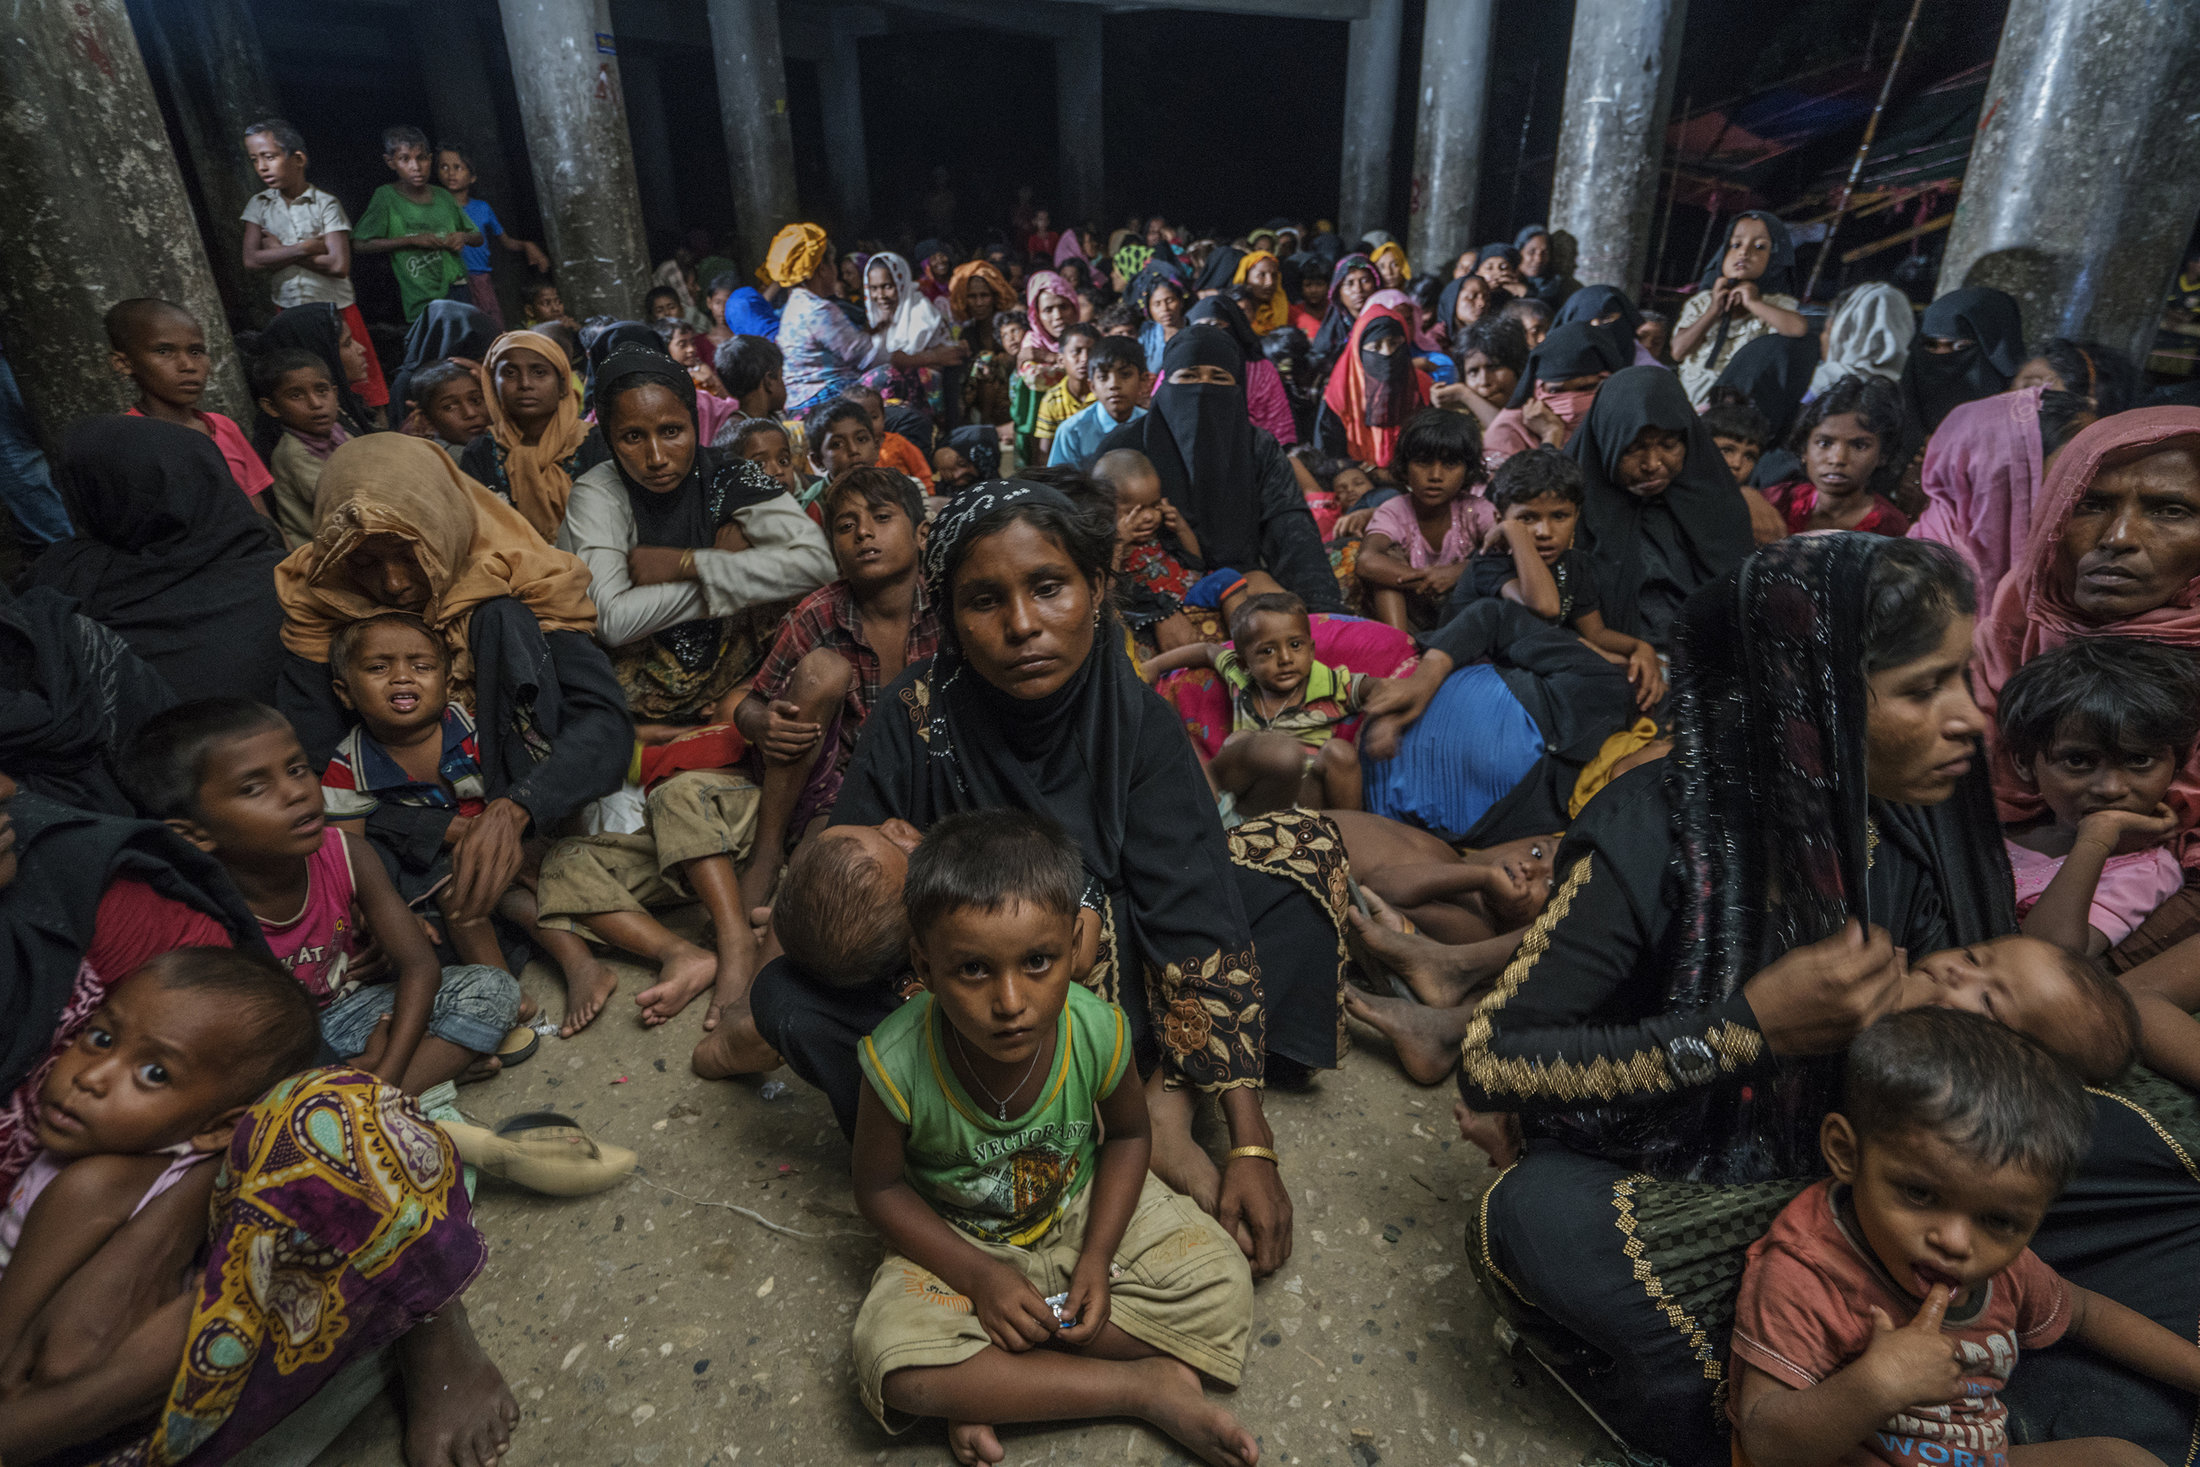 _pic 2_ Shahidul Alam, Rohingya peoples in a Cyclone Shelter, 2017.jpg